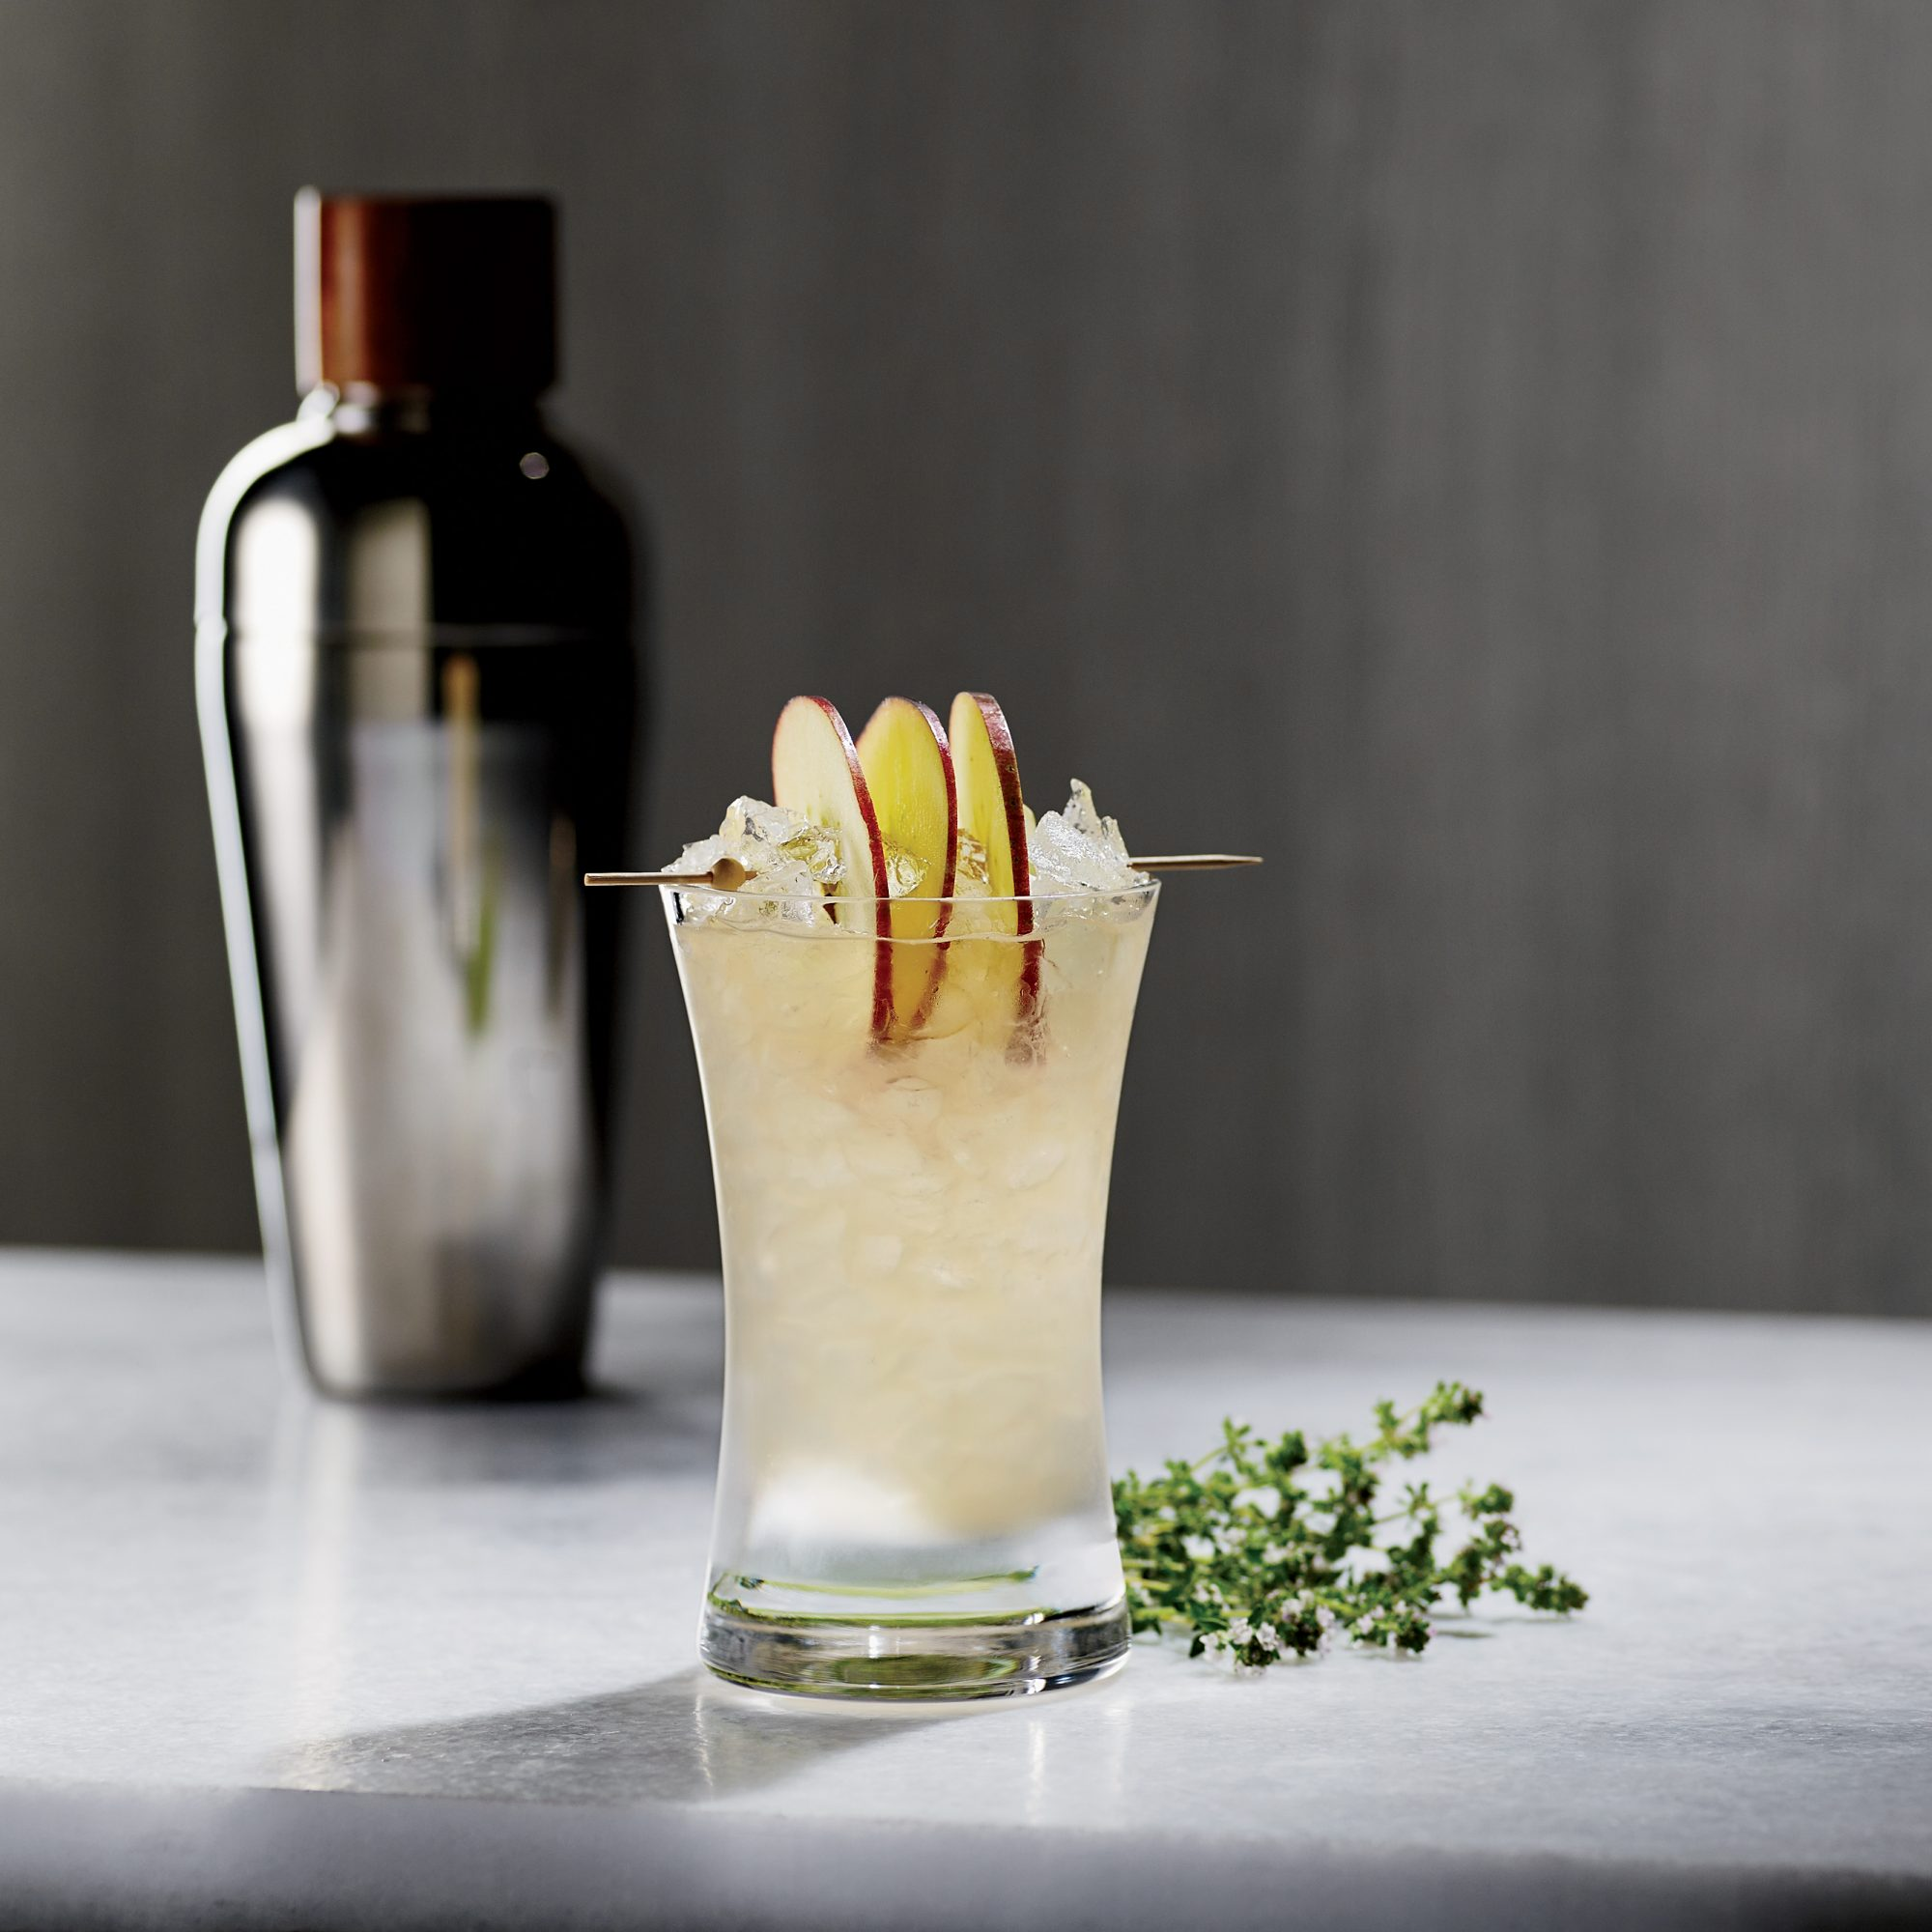 Tyler Stevens adds heft to this vodka drink with sherry and Génépy des Alpes.